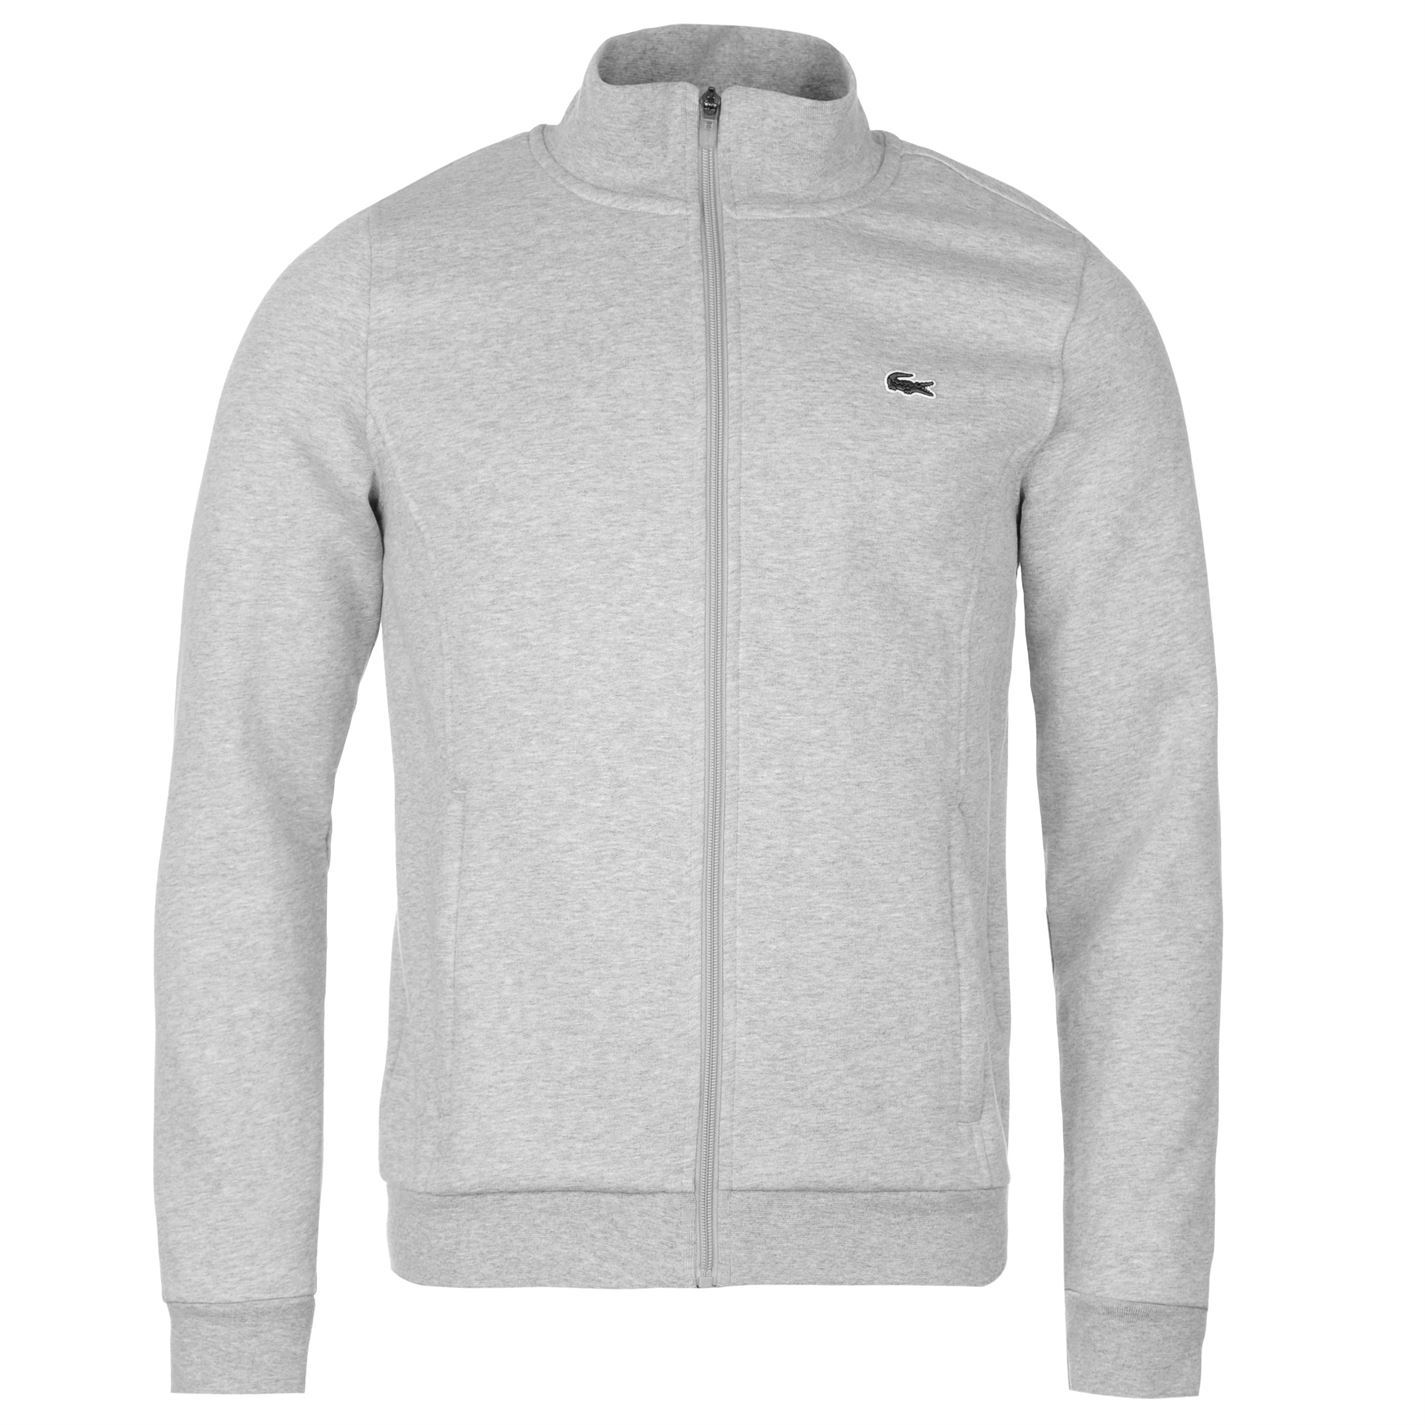 Eastbay For Sale Lacoste Full Zip Funnel Sweatshirt Discount Looking For Purchase Your Favorite  Buy Cheap Websites FKu62VJ